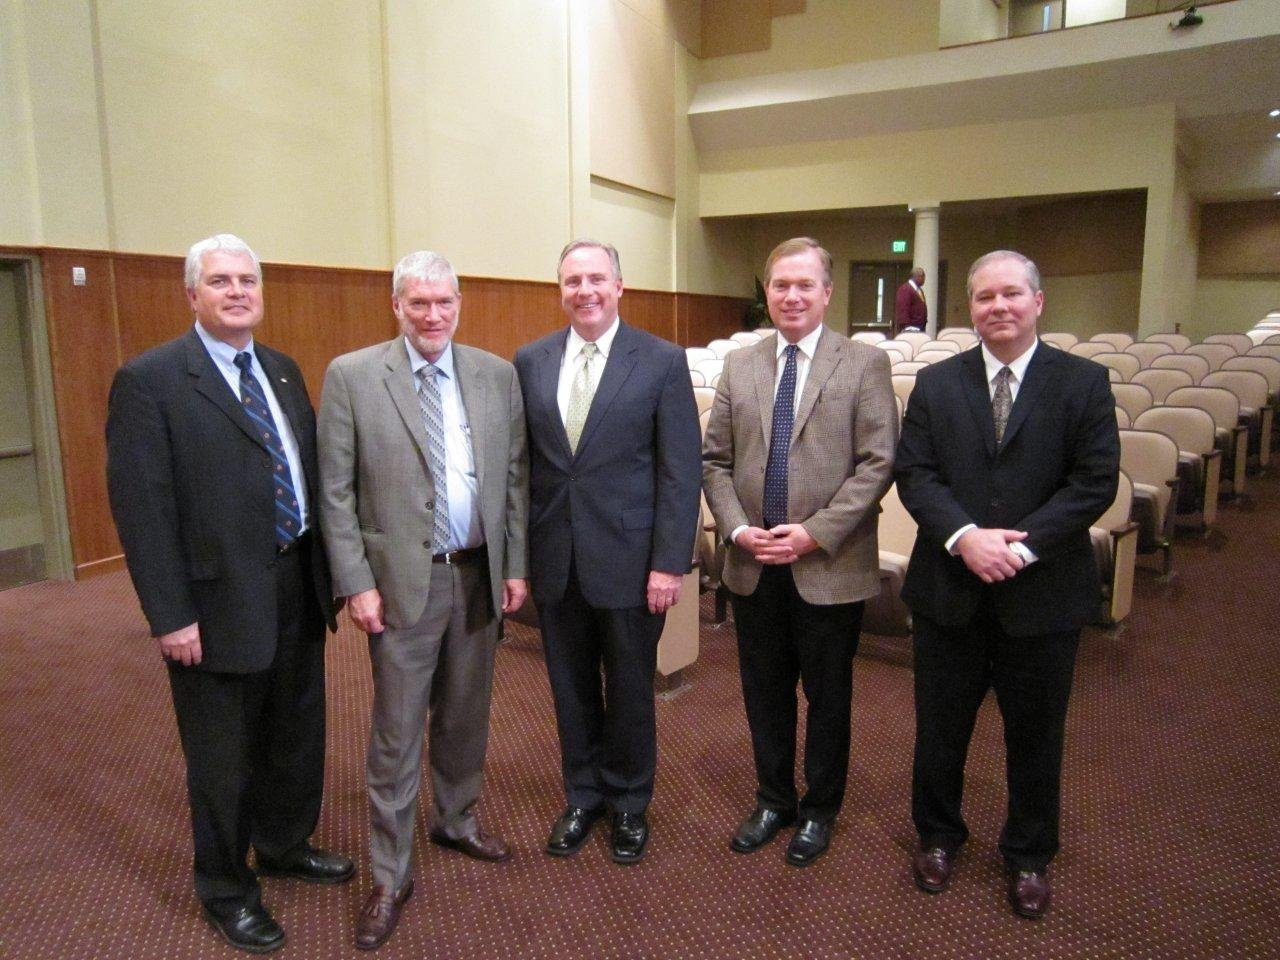 Dr. Timothy C. Seal, vice president for academics; me; Dr. Michael R. Spradlin, president; Dr. Bradley C. Thompson,  executive vice president; and Dr. R. Kirk Kilpatrick, dean of the masters and associates programs